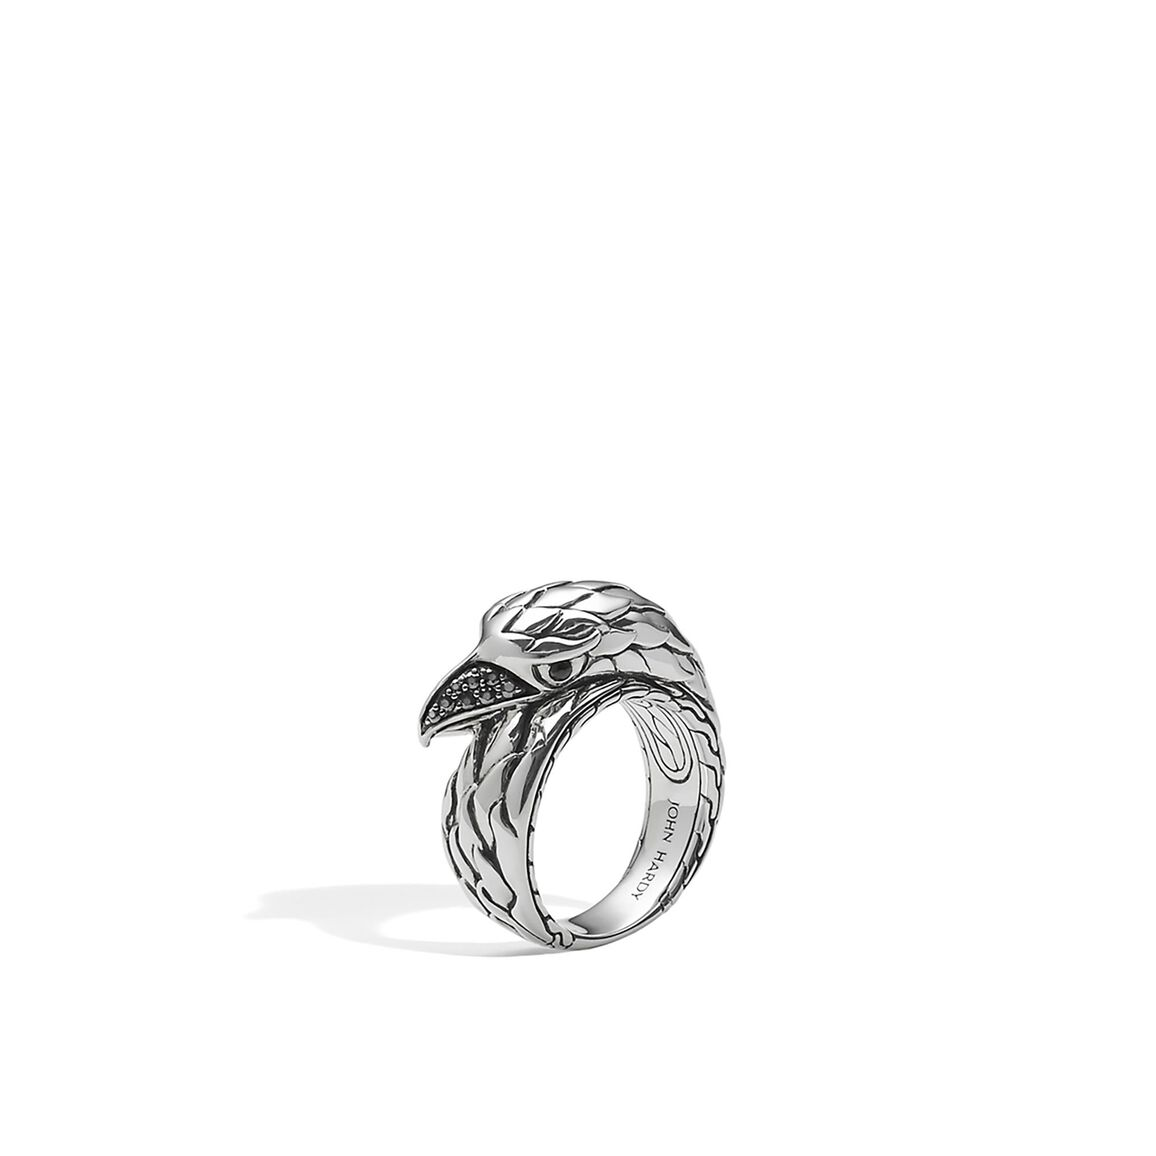 Legends Eagle Ring in Silver with Gemstone